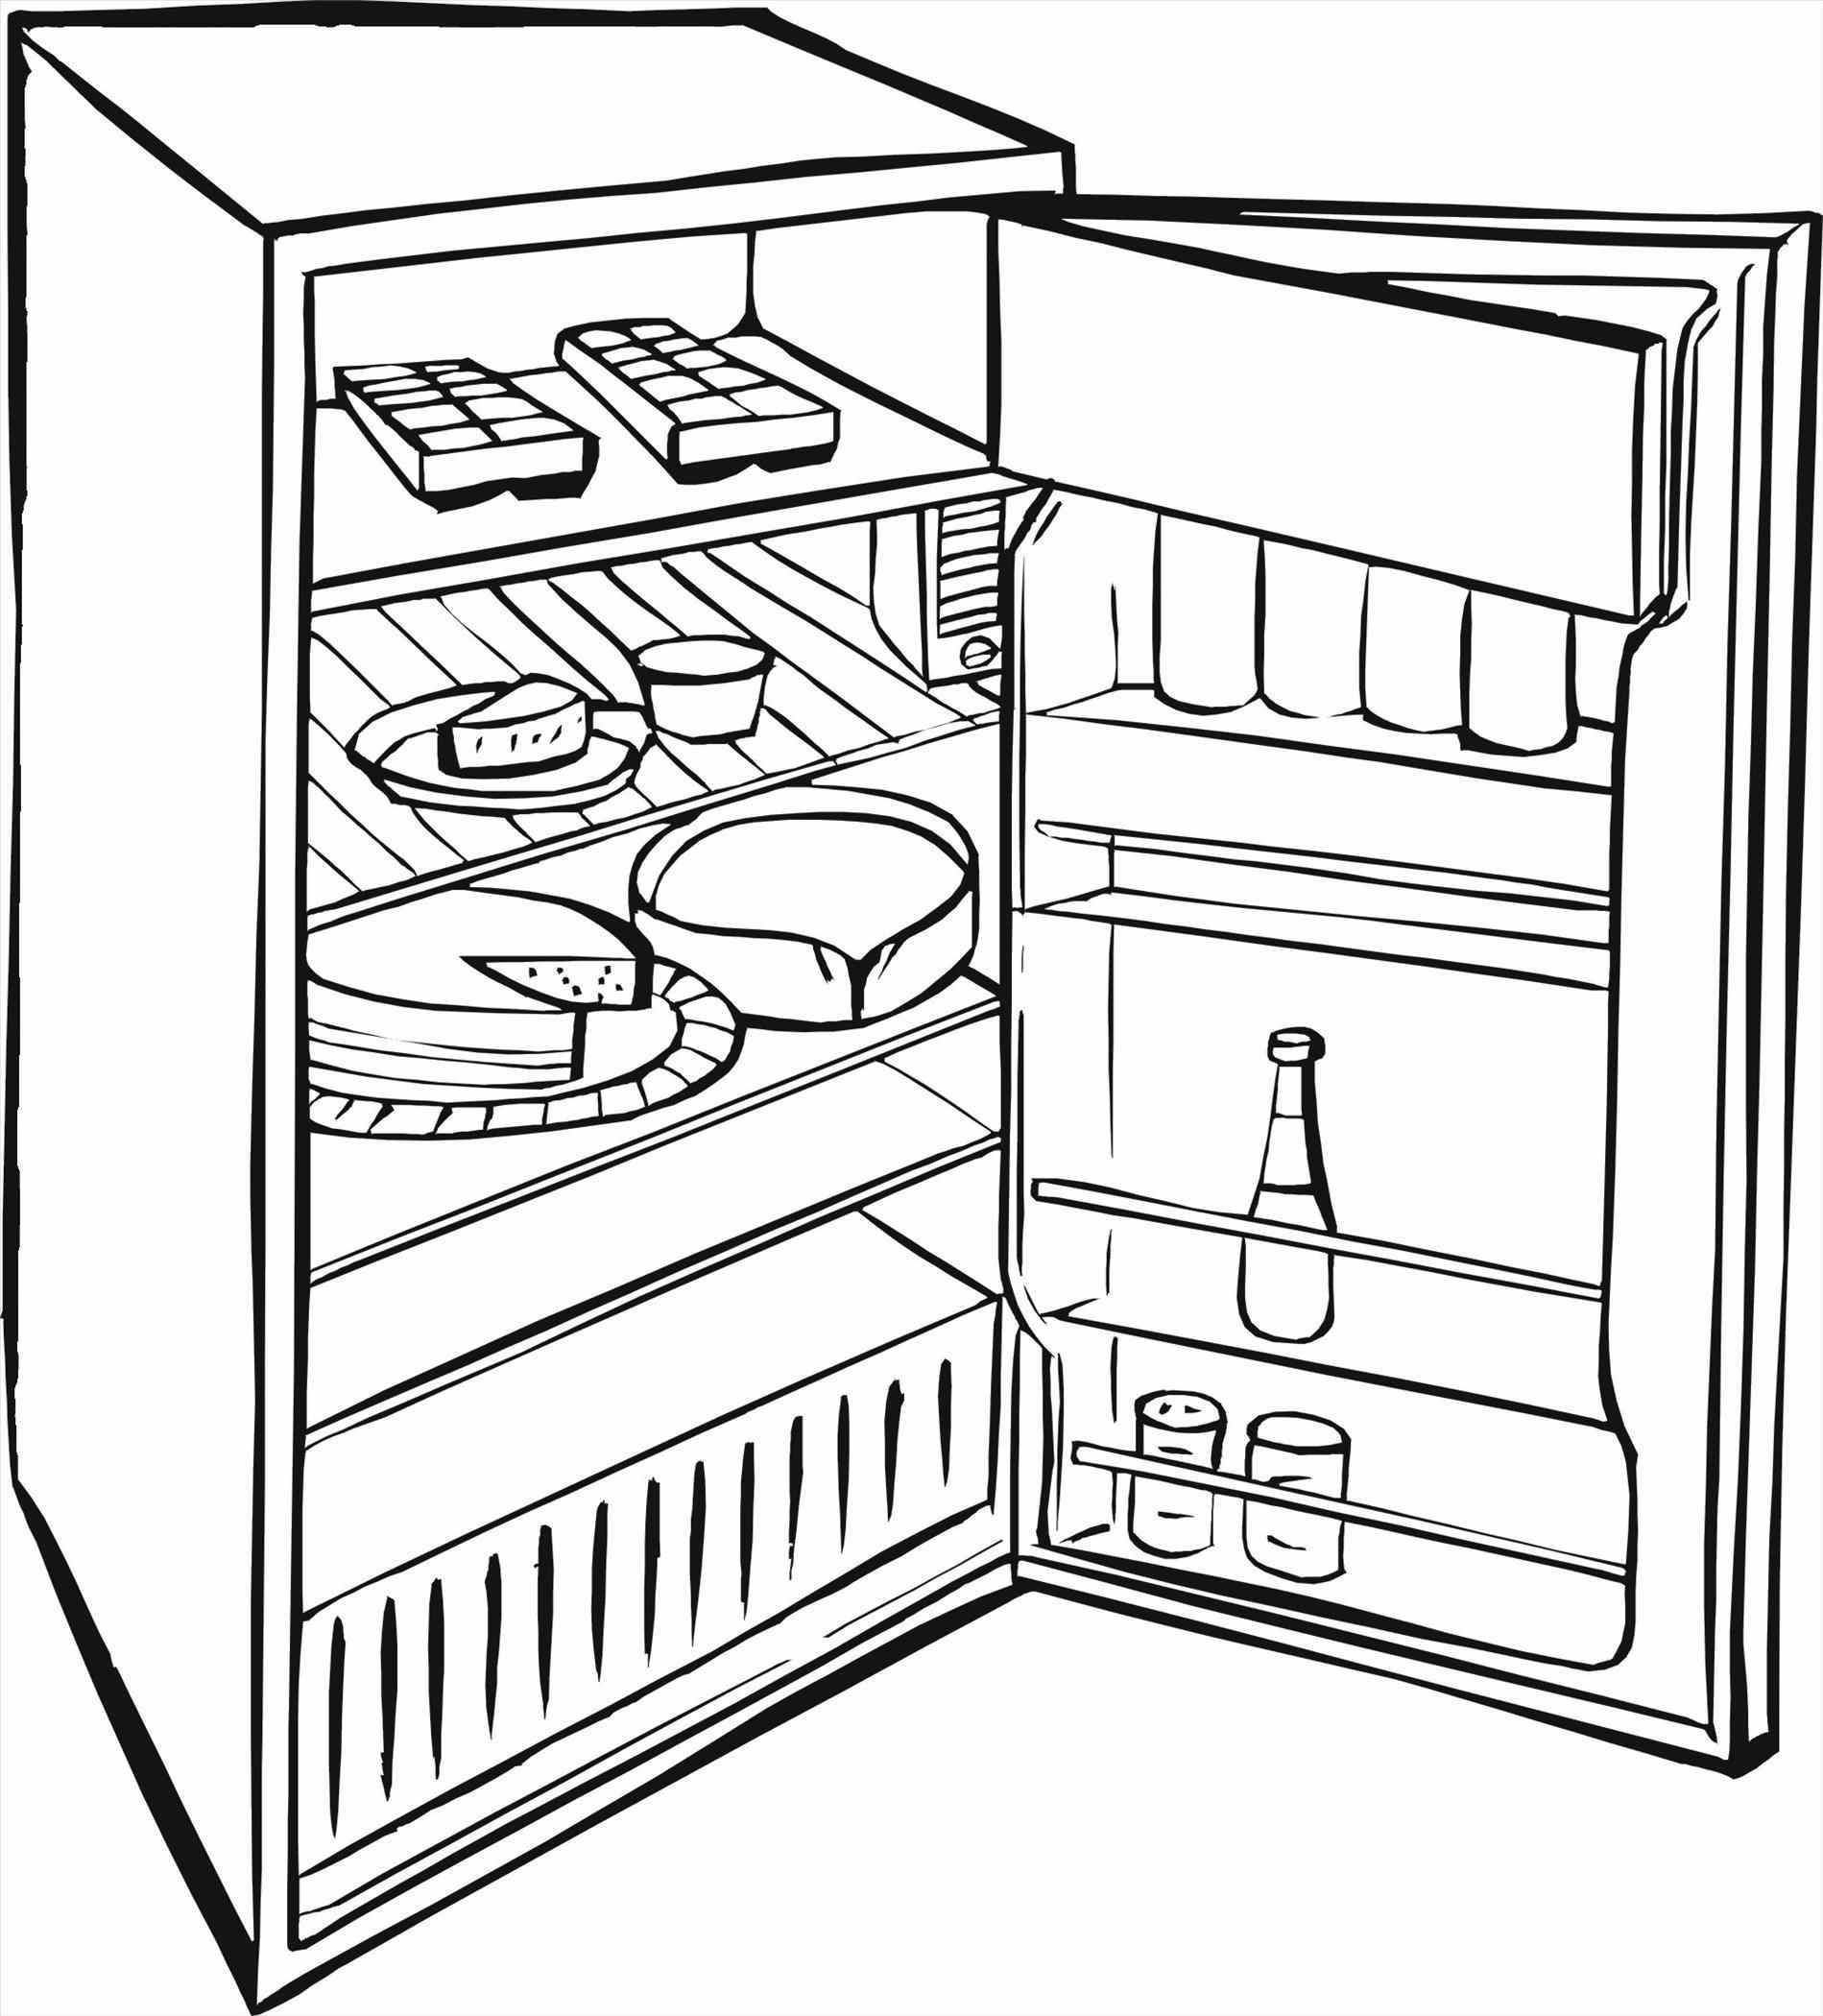 refrigerator drawing at getdrawings com